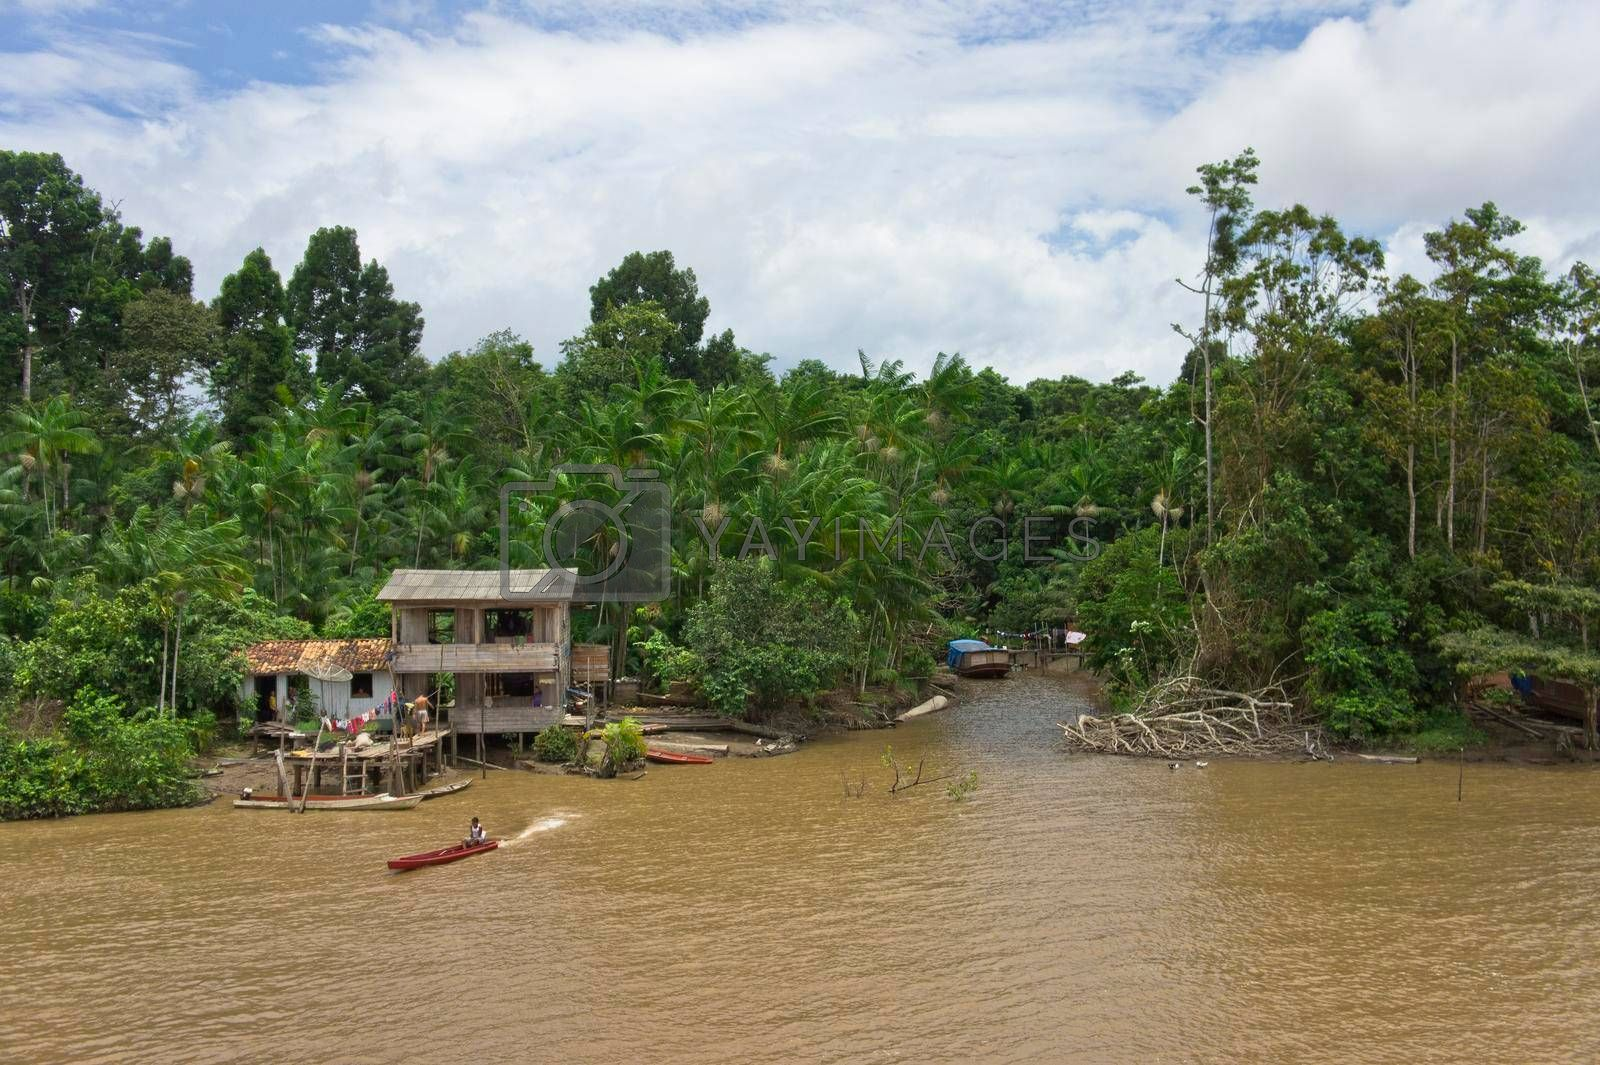 Amazon river view, Indians Village by the river, Brazil, South America